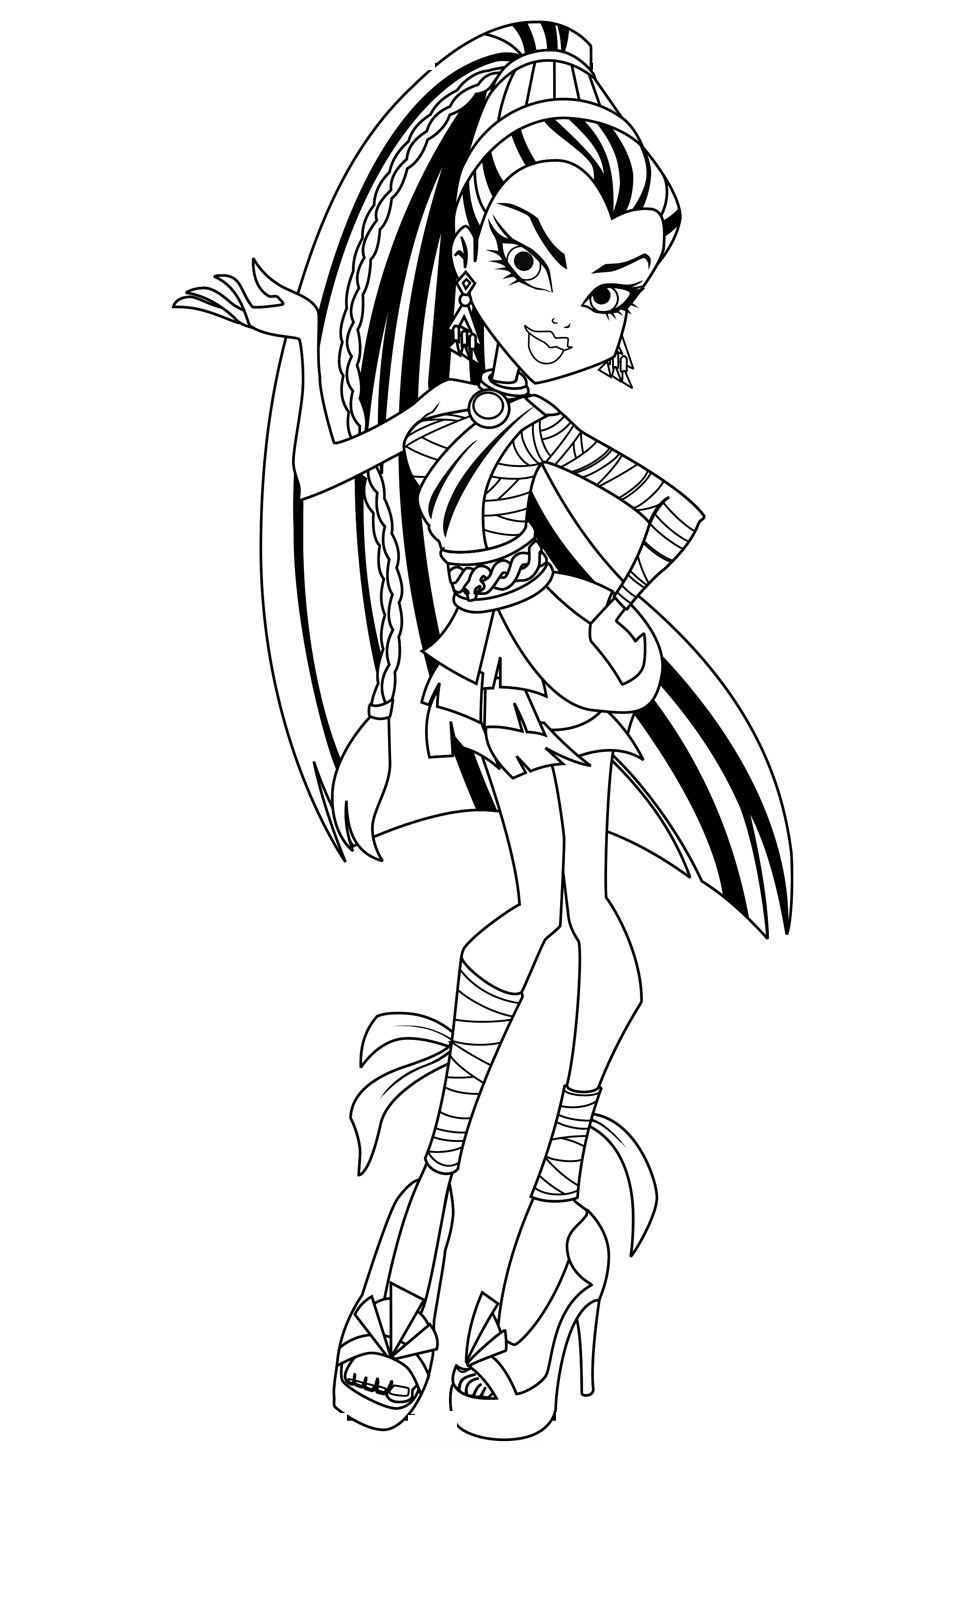 Monster High Coloring Page Coloring Page Monster High Coloring Book Pages Remarkable Inside